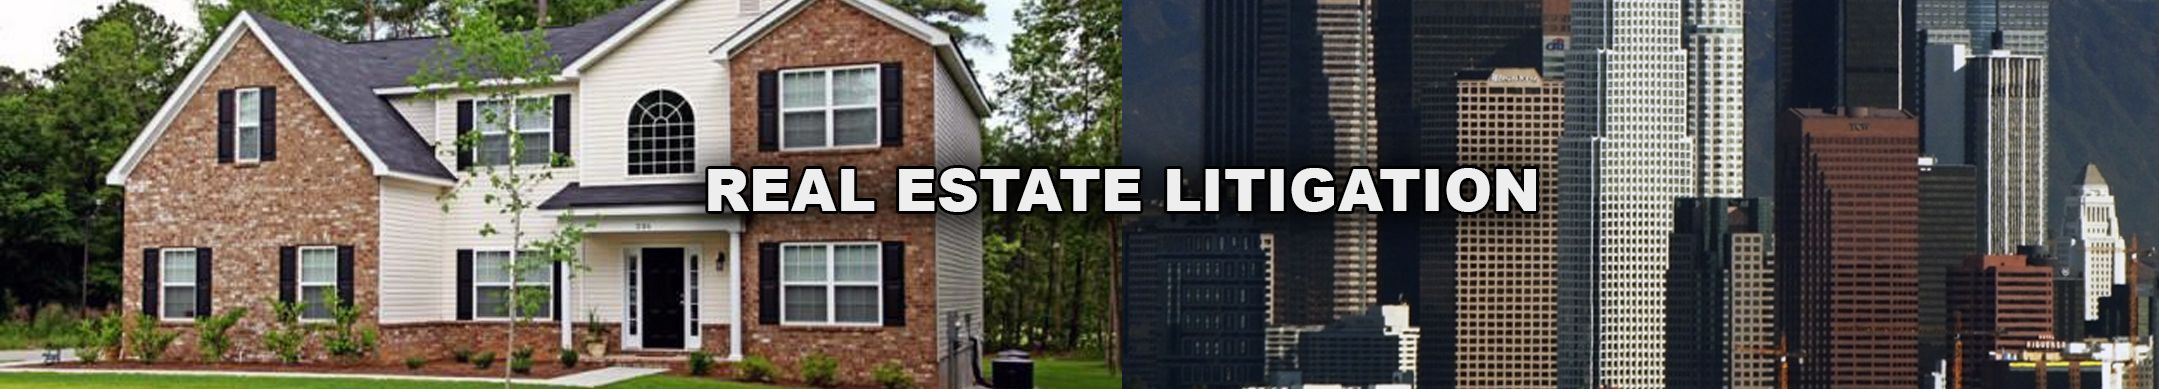 Real Estate Litigation Is One Of The Services We Provide We Have Many Years Of Winning Experience In A Wide Range Of R Litigation Real Estate Foreclosures